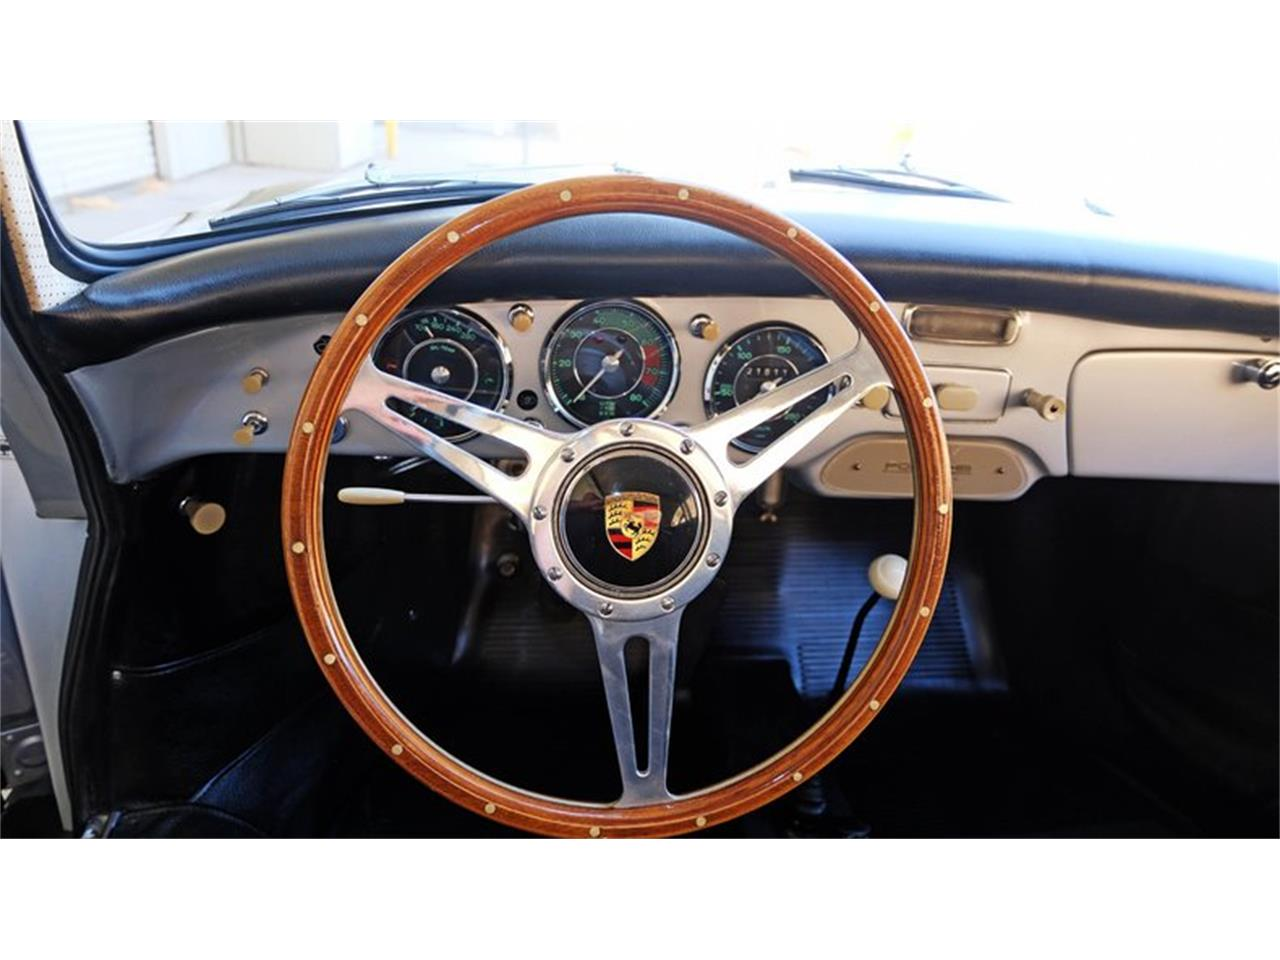 1957 Porsche 356 for sale in San Diego, CA – photo 99